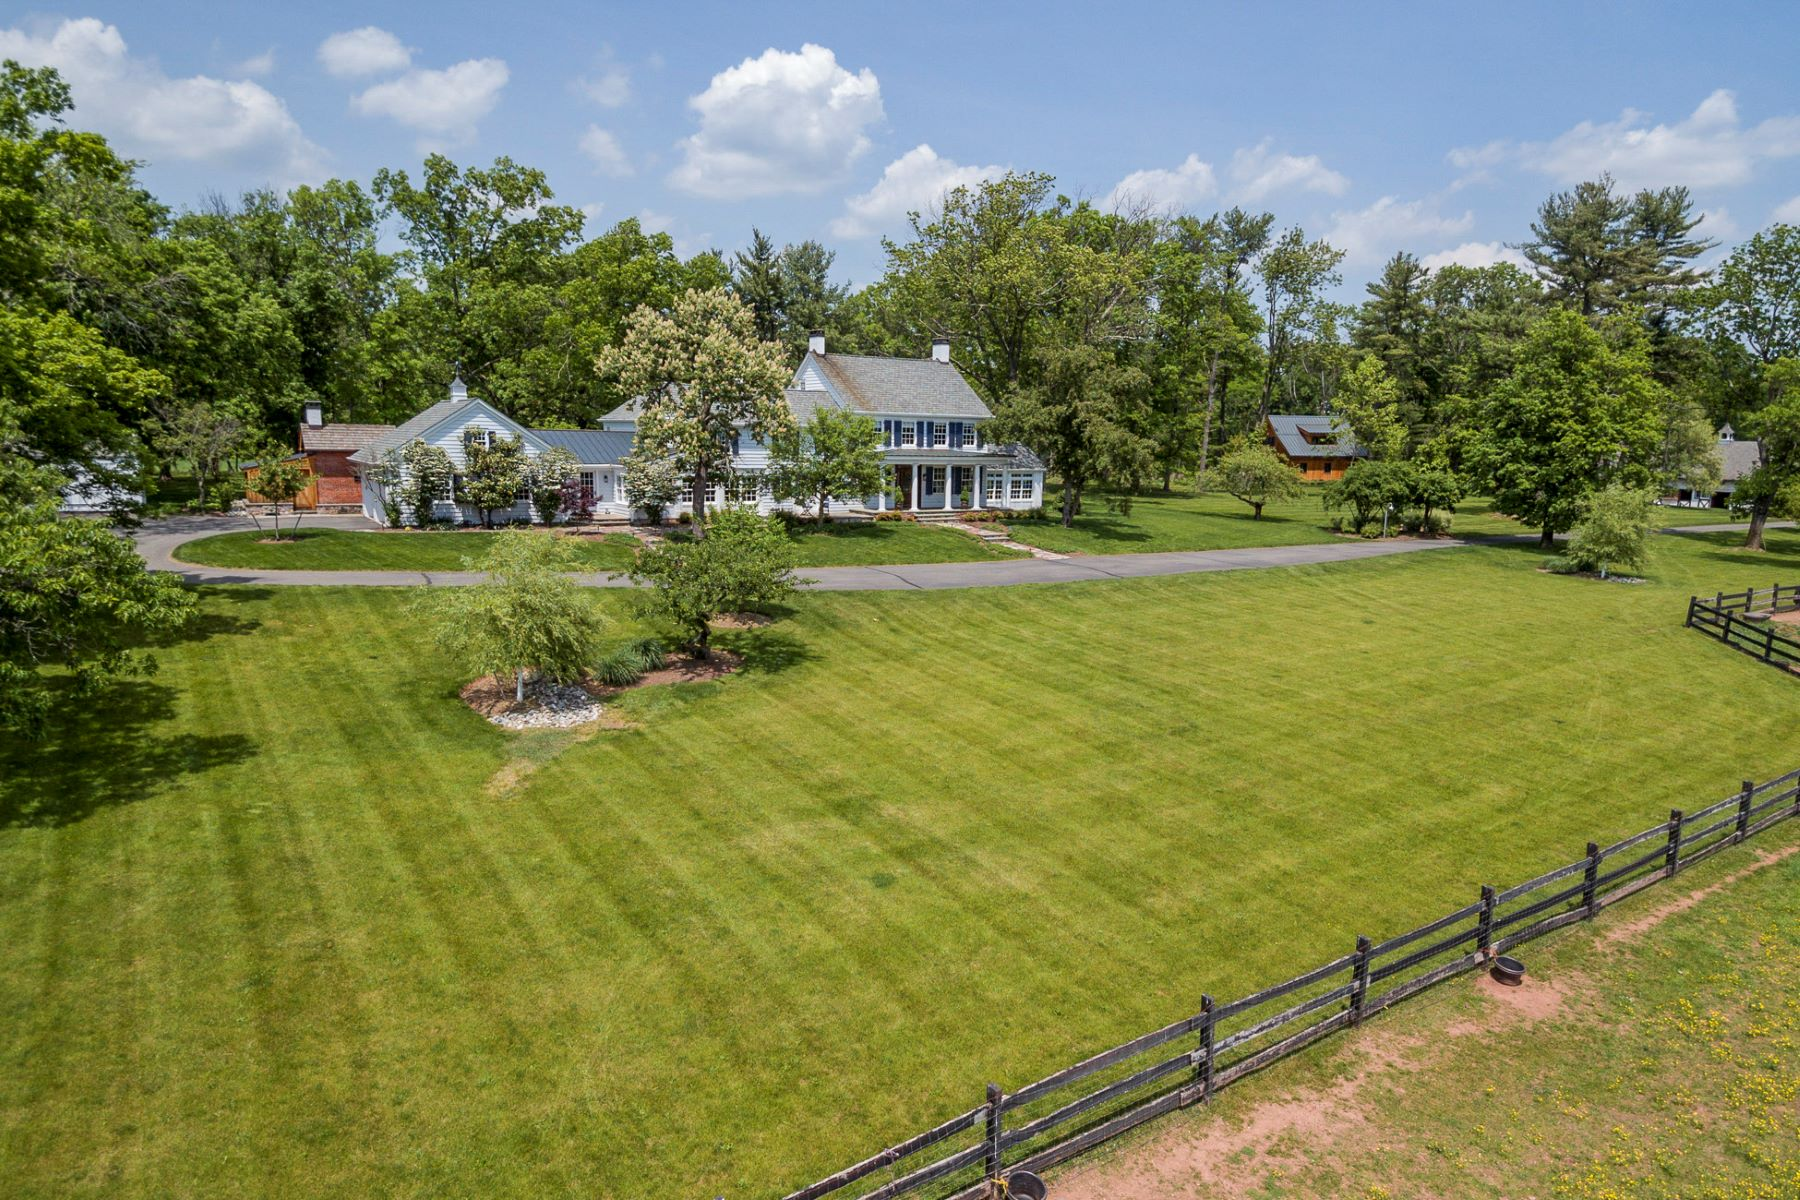 Maison unifamiliale pour l Vente à Historic Farm Reimagined for the Modern Equestrian - Hopewell Township 266 Province Line Road Skillman, New Jersey, 08558 États-UnisDans/Autour: Hopewell Township